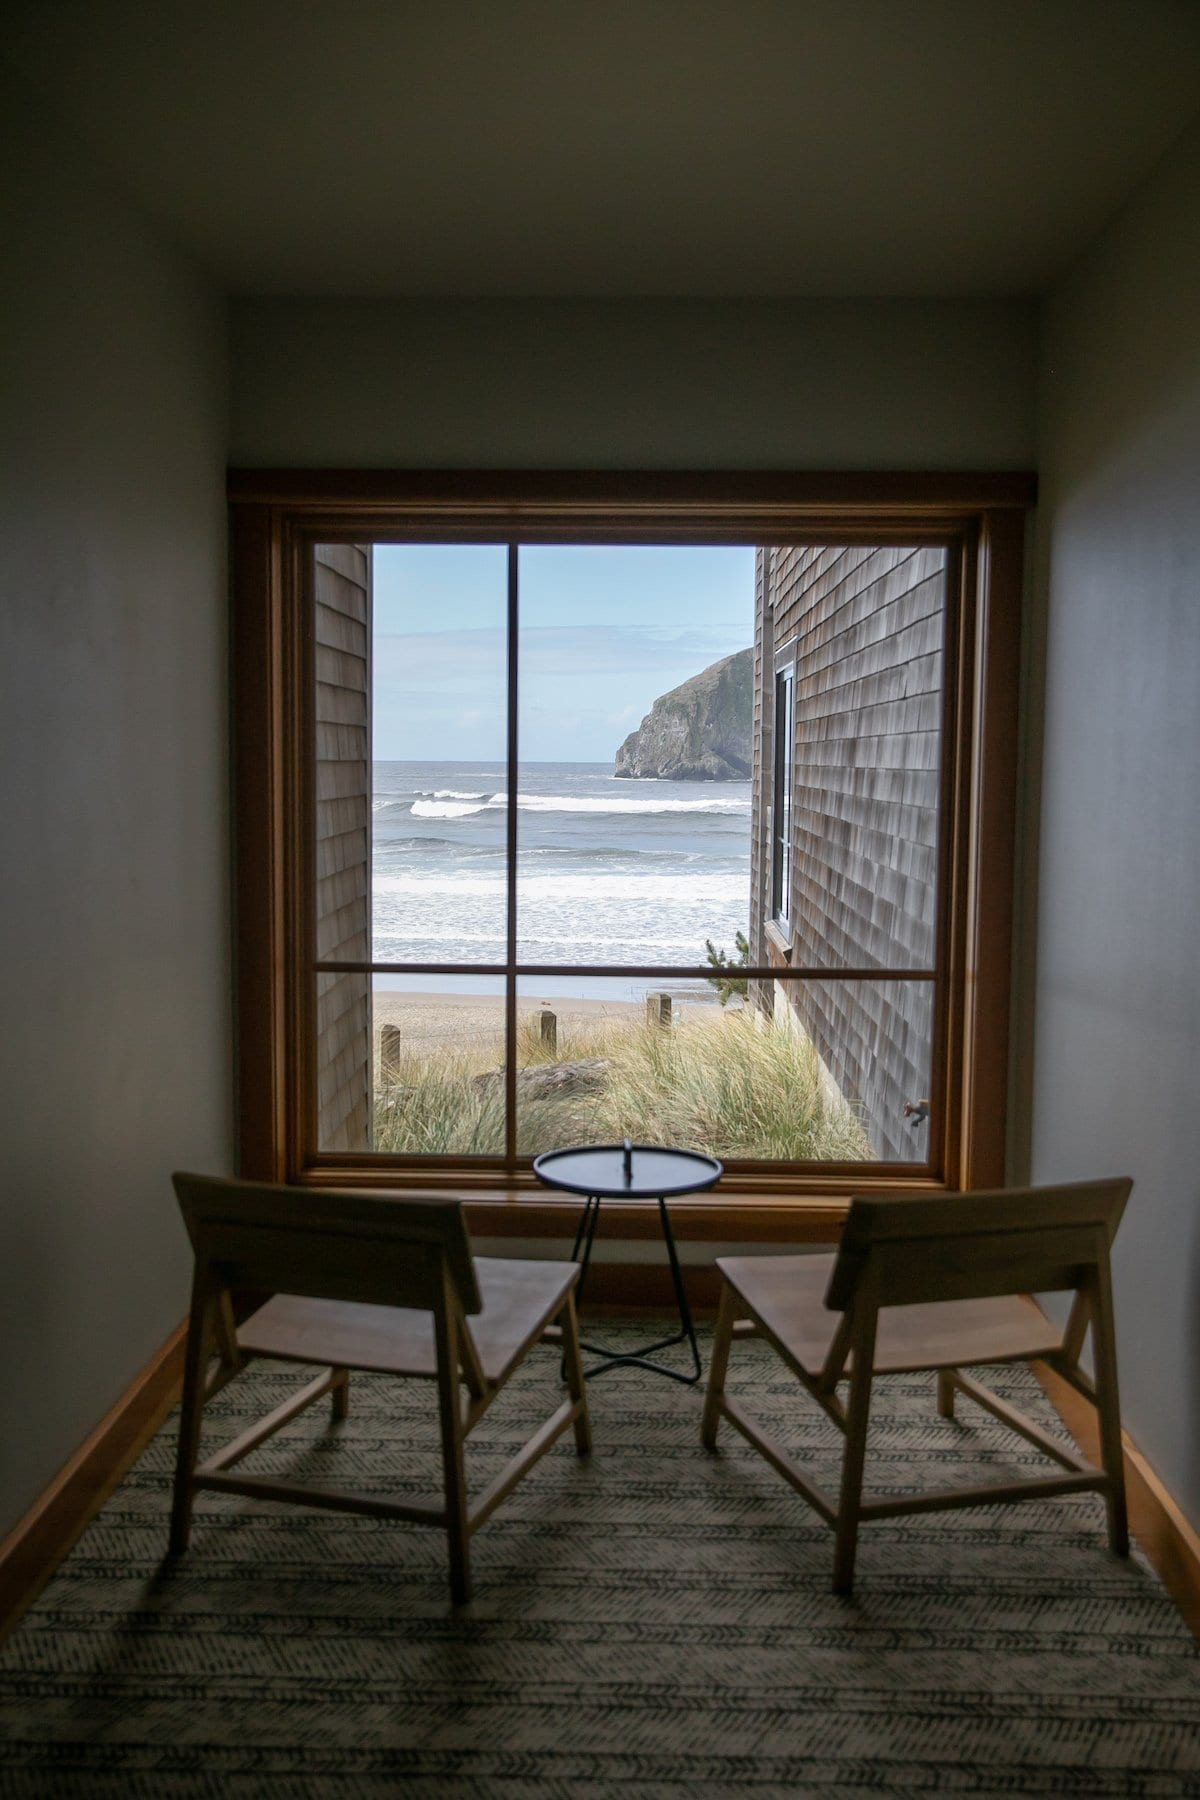 two chairs facing a window of beach